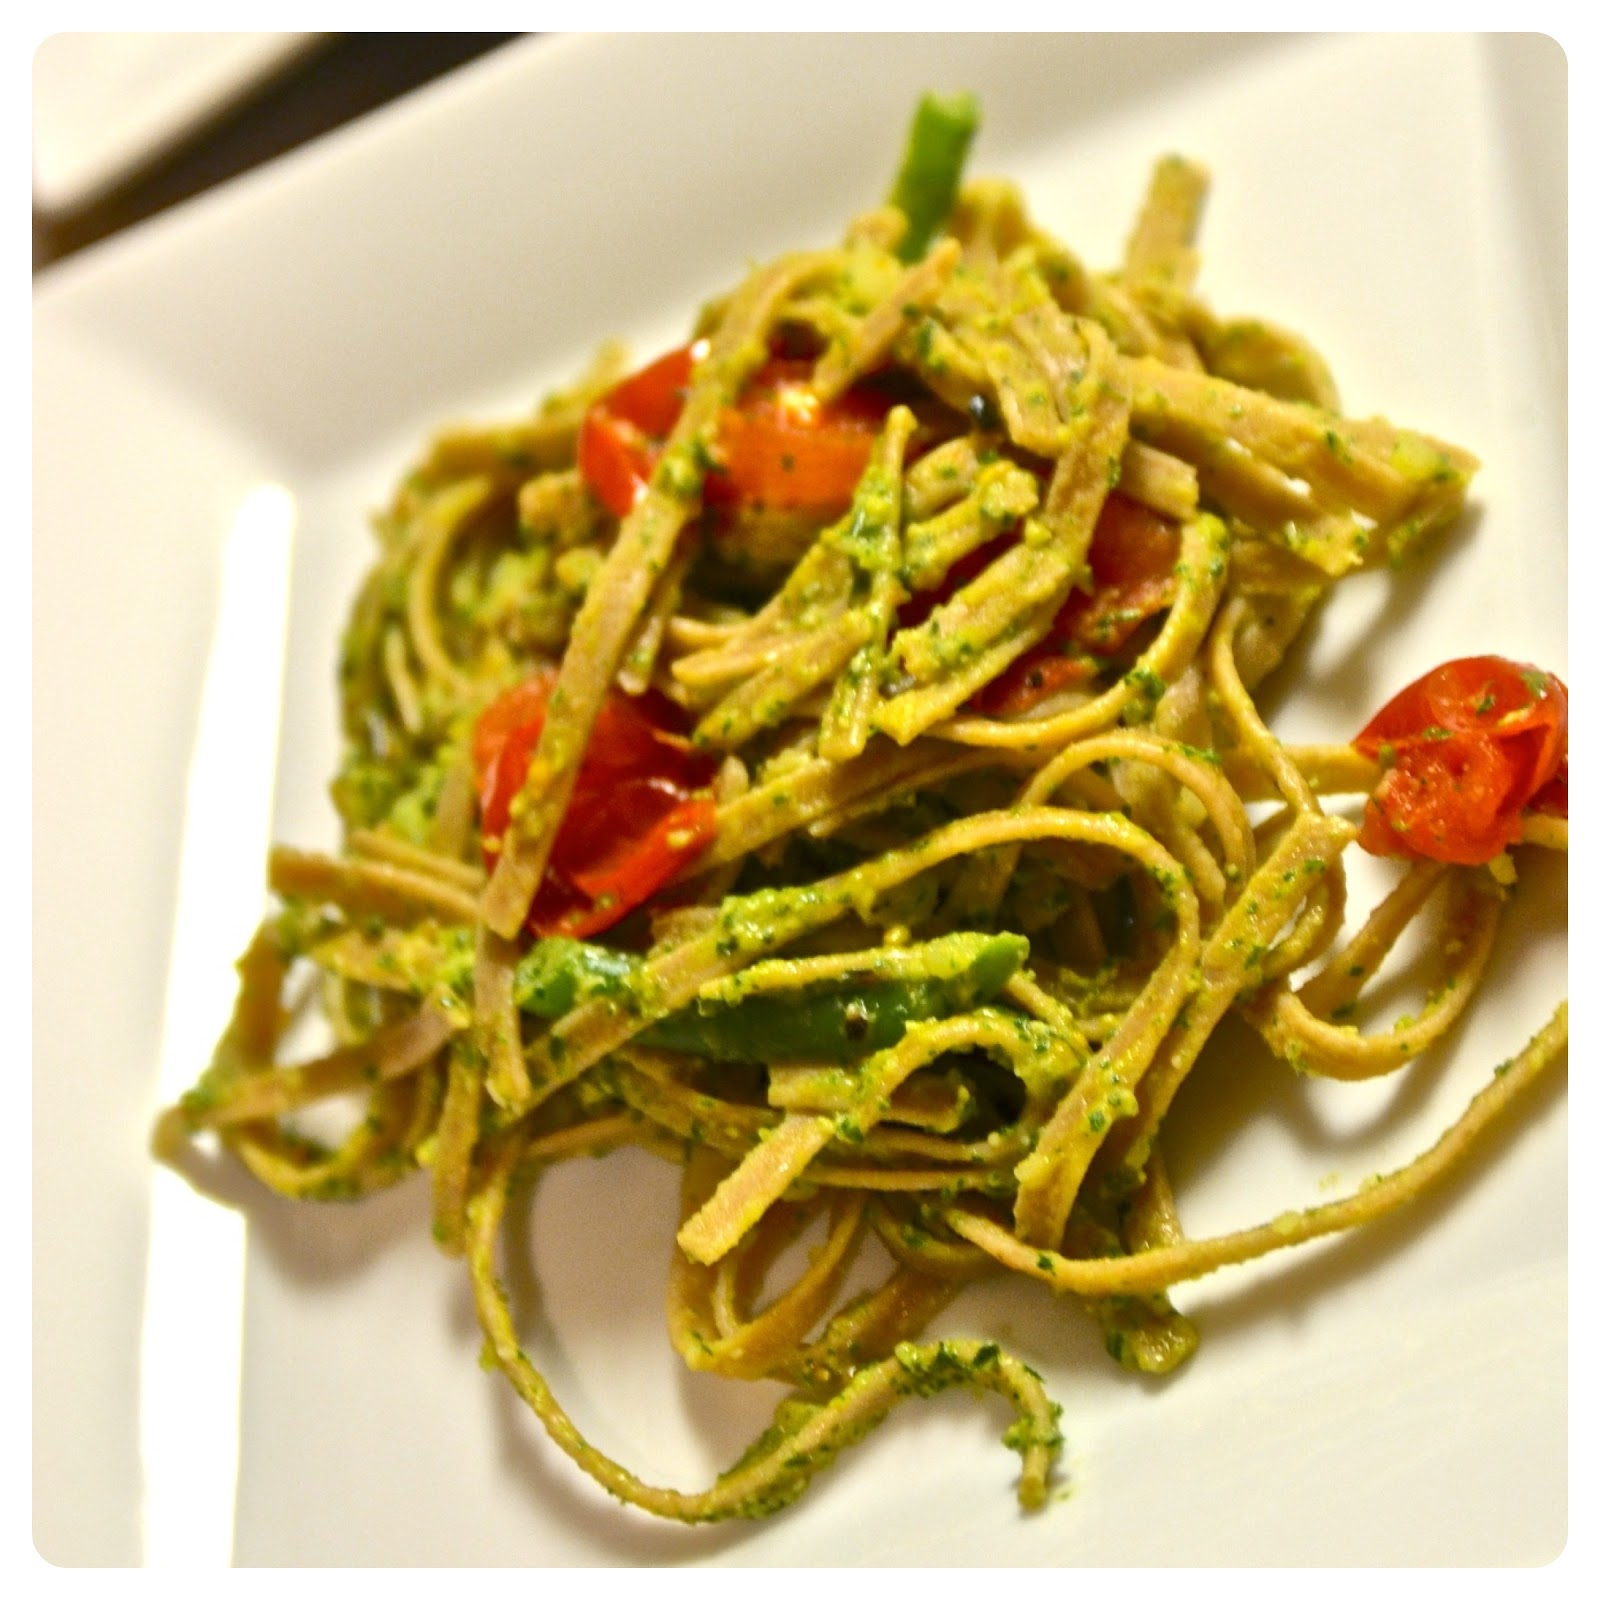 ... Rustic Genovese Basil Pesto Pasta, and Curried Chicken with Coconut